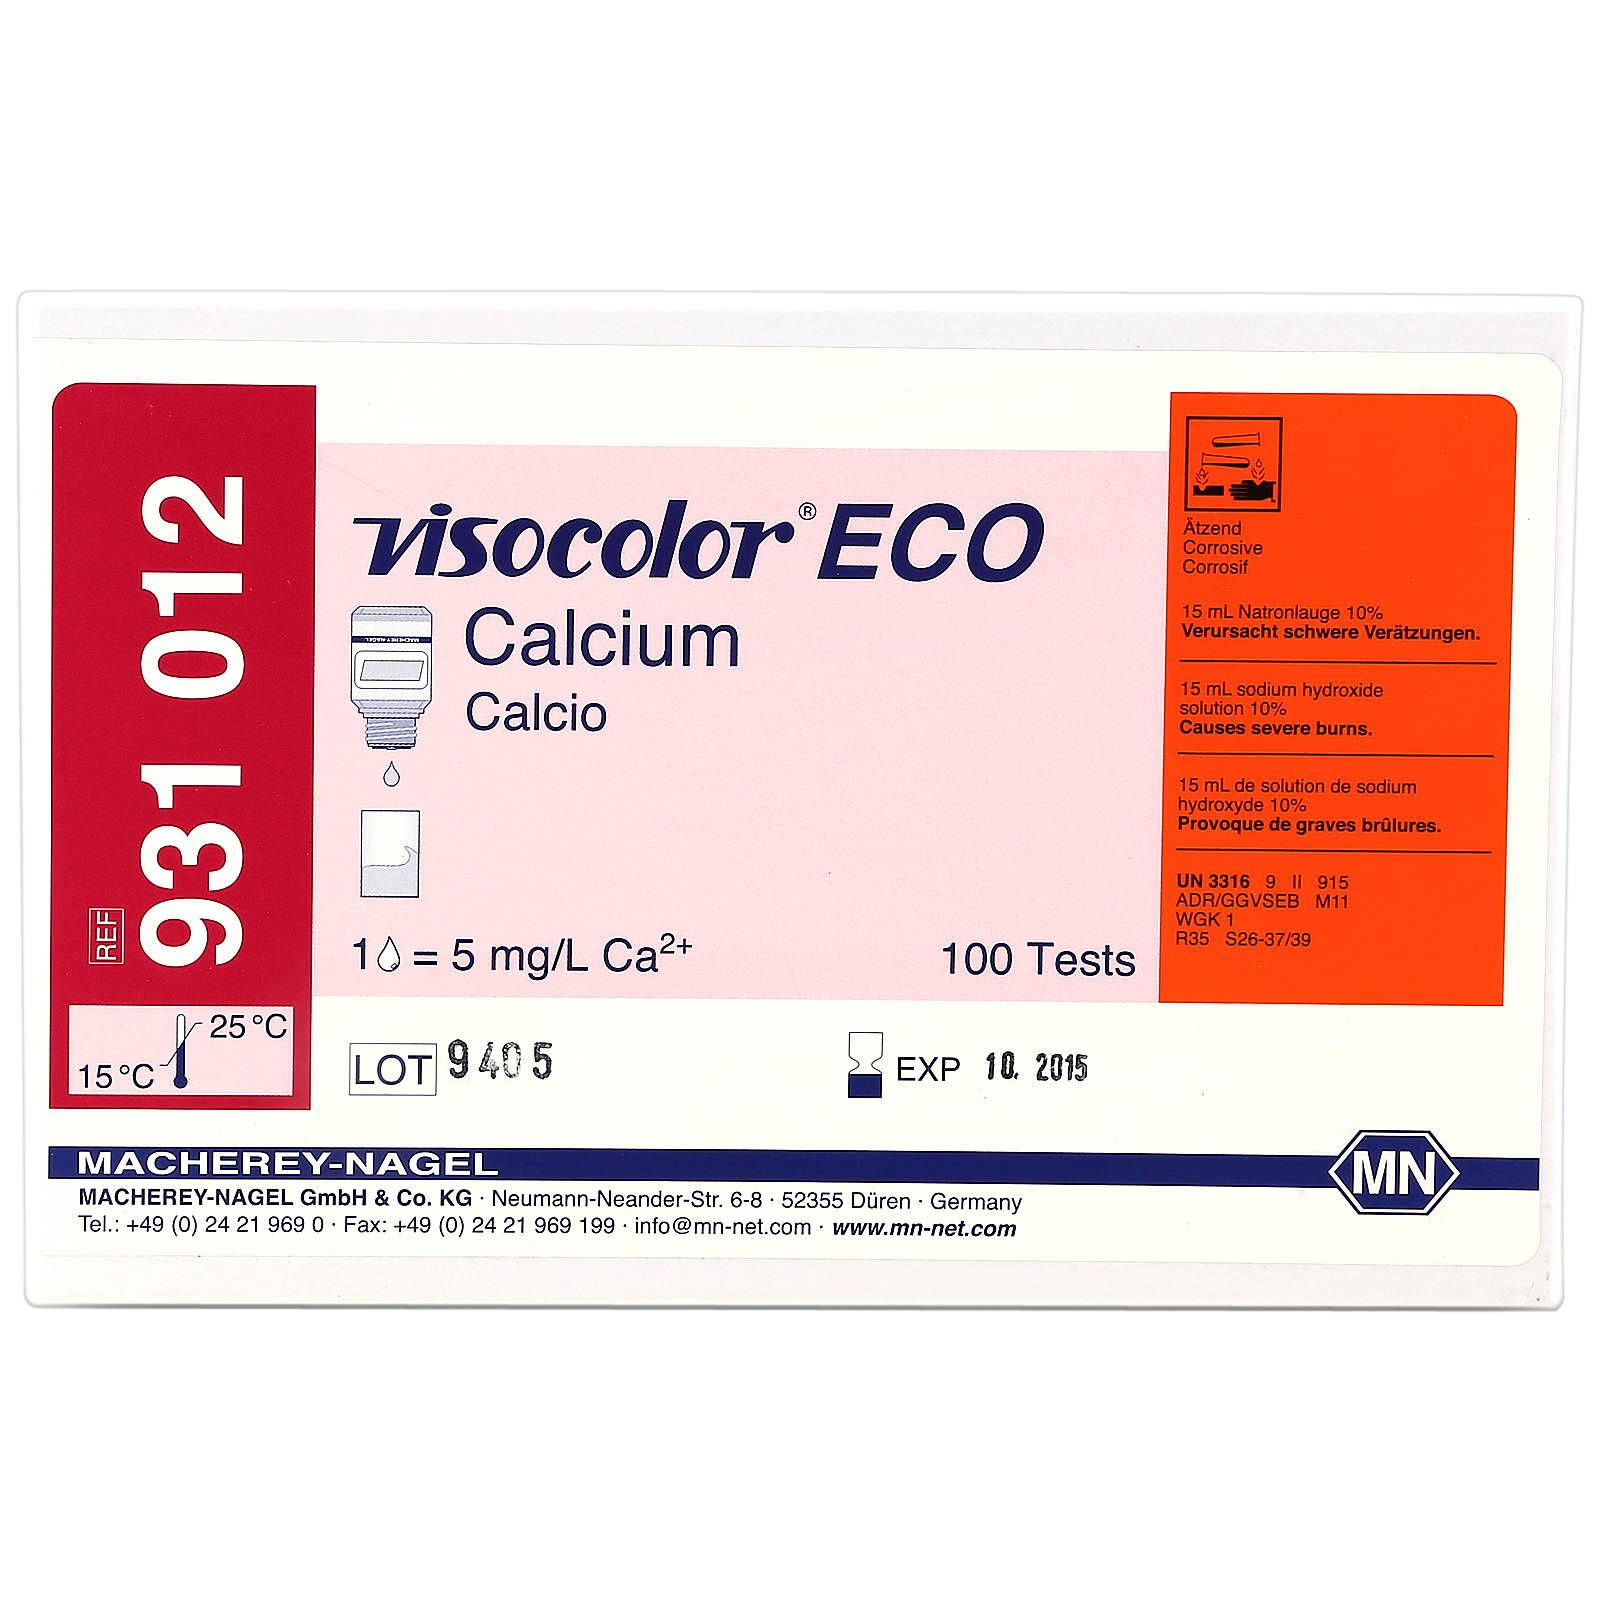 Macherey-Nagel - Visocolor ECO - Calcium - Test